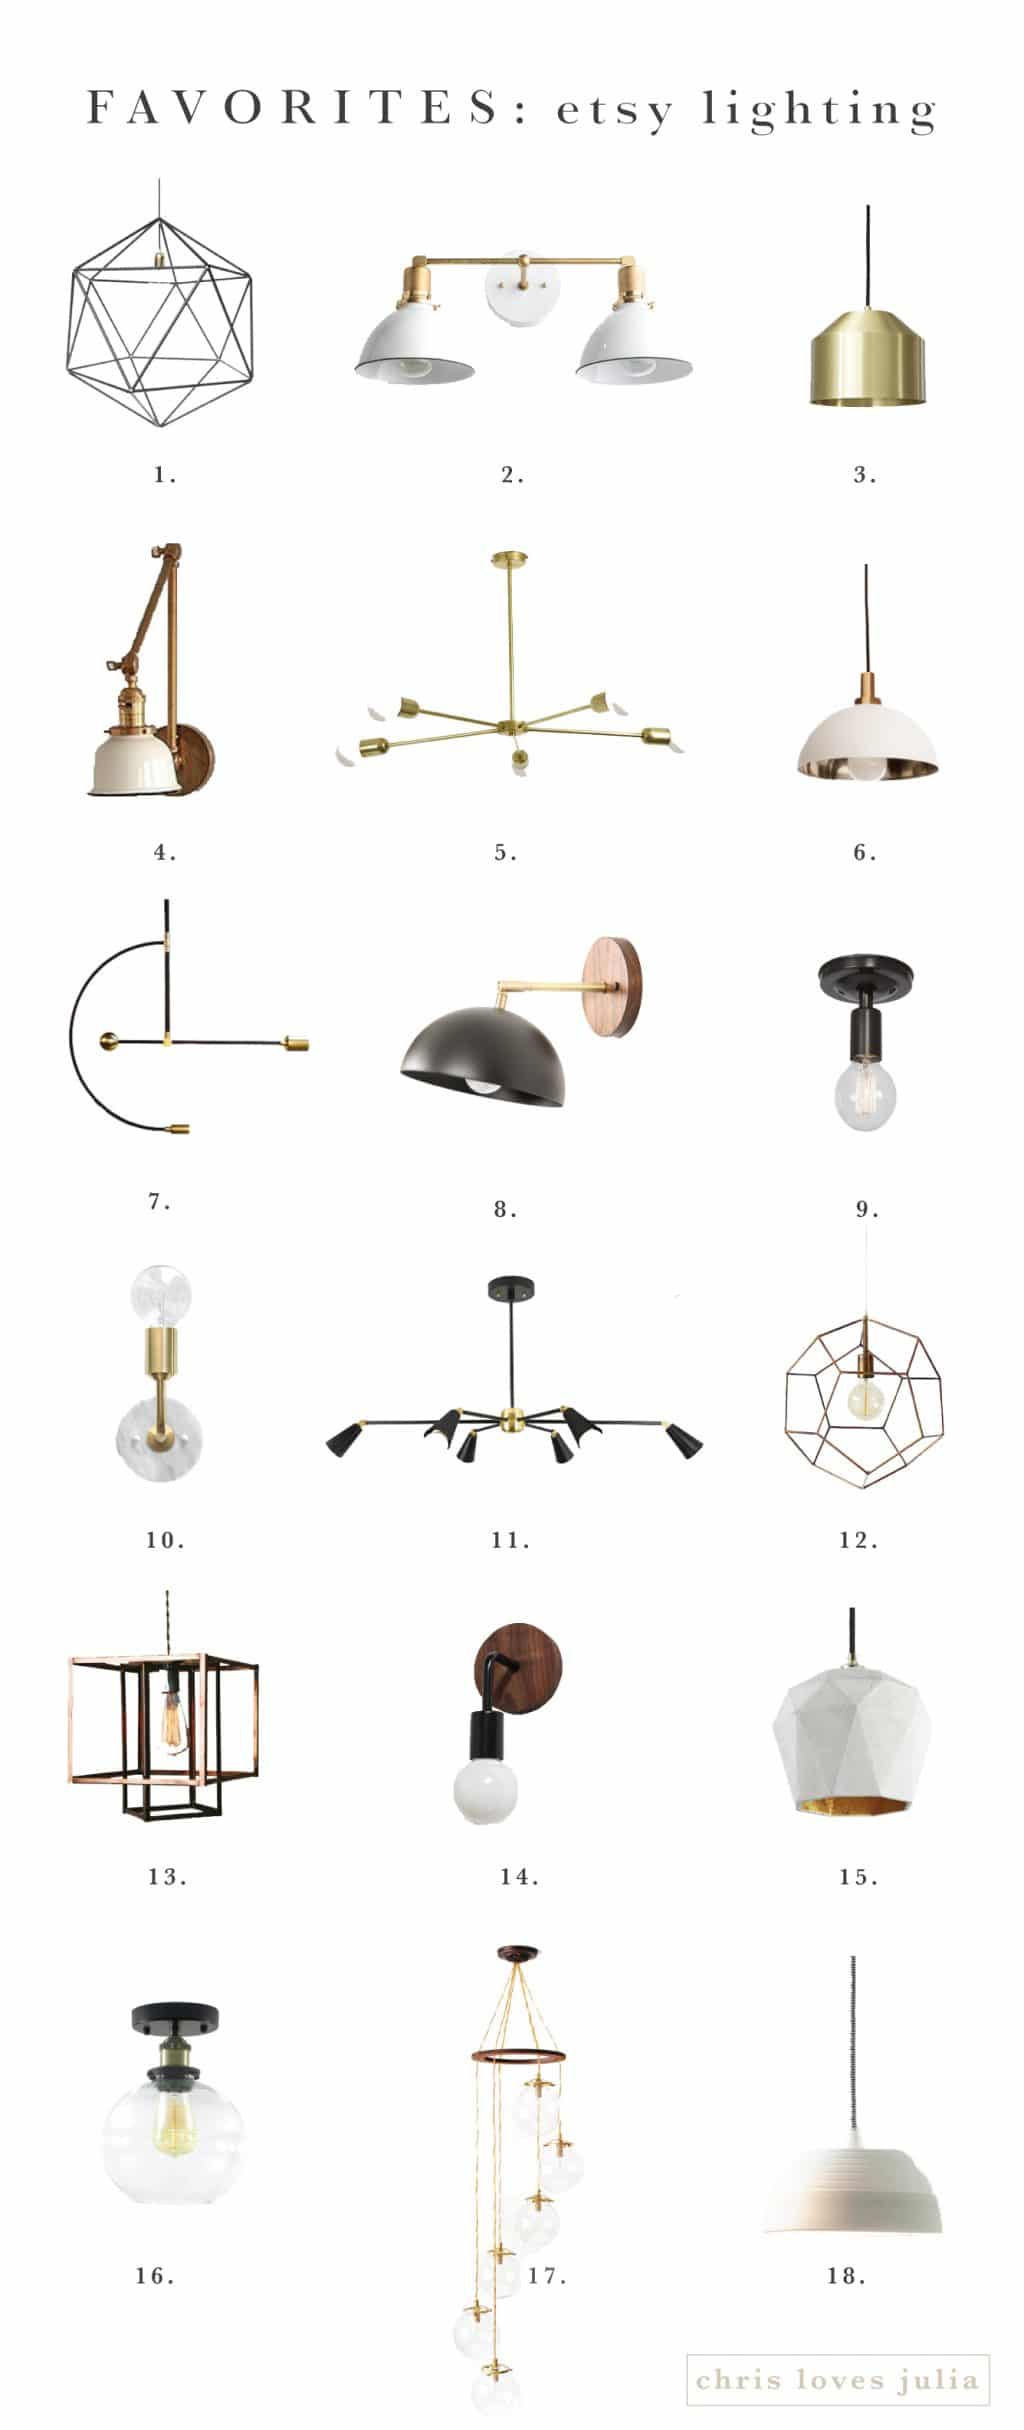 etsy lighting. Although There Are Many More, Here 18 Incredible Light Sources On Etsy That Caught My Eye, And A Sample From Each: Lighting